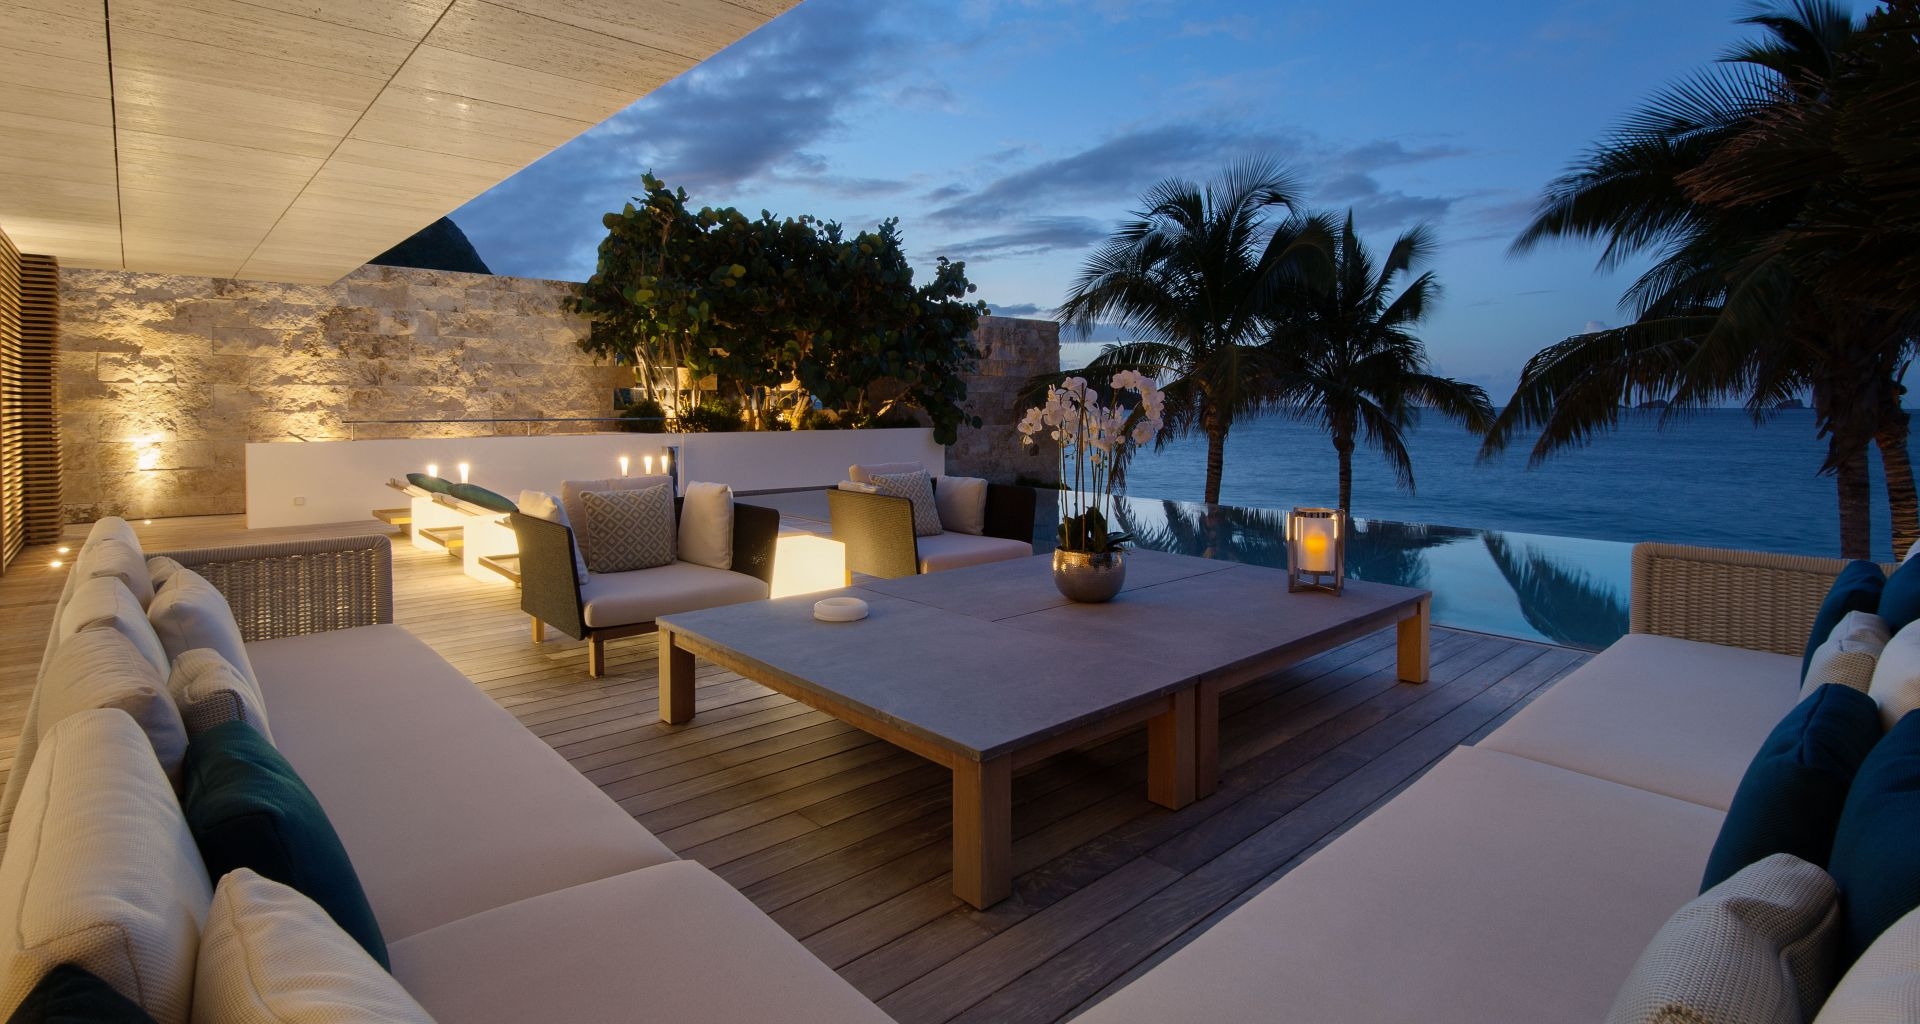 Villa Wake Up, Saint-Barth, Caraibes